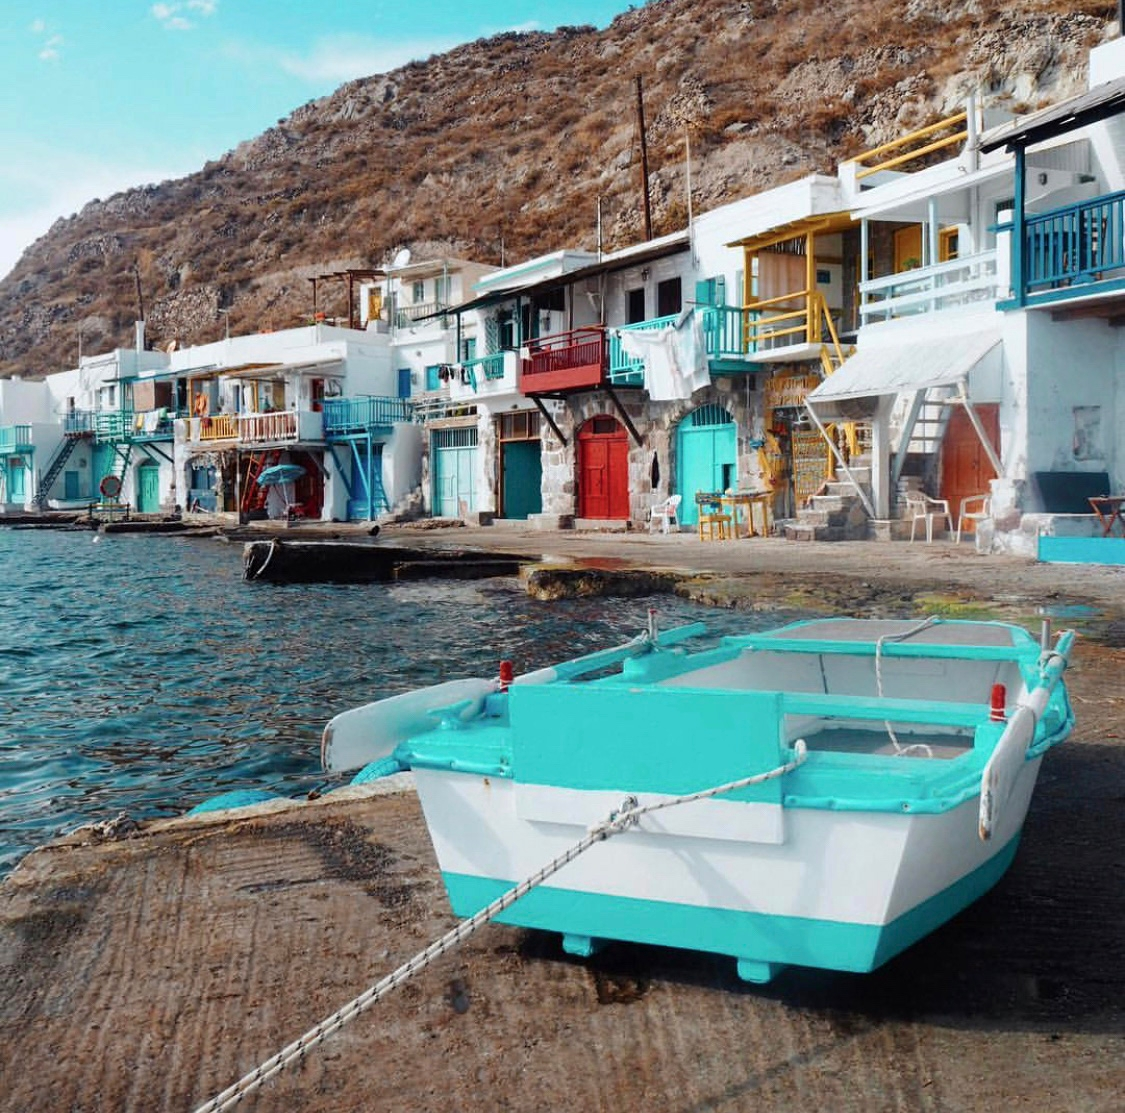 White houses with colourful finishes line the coast of the fishing village, and a bright turquoise and white boat is berthed on a concrete dock.